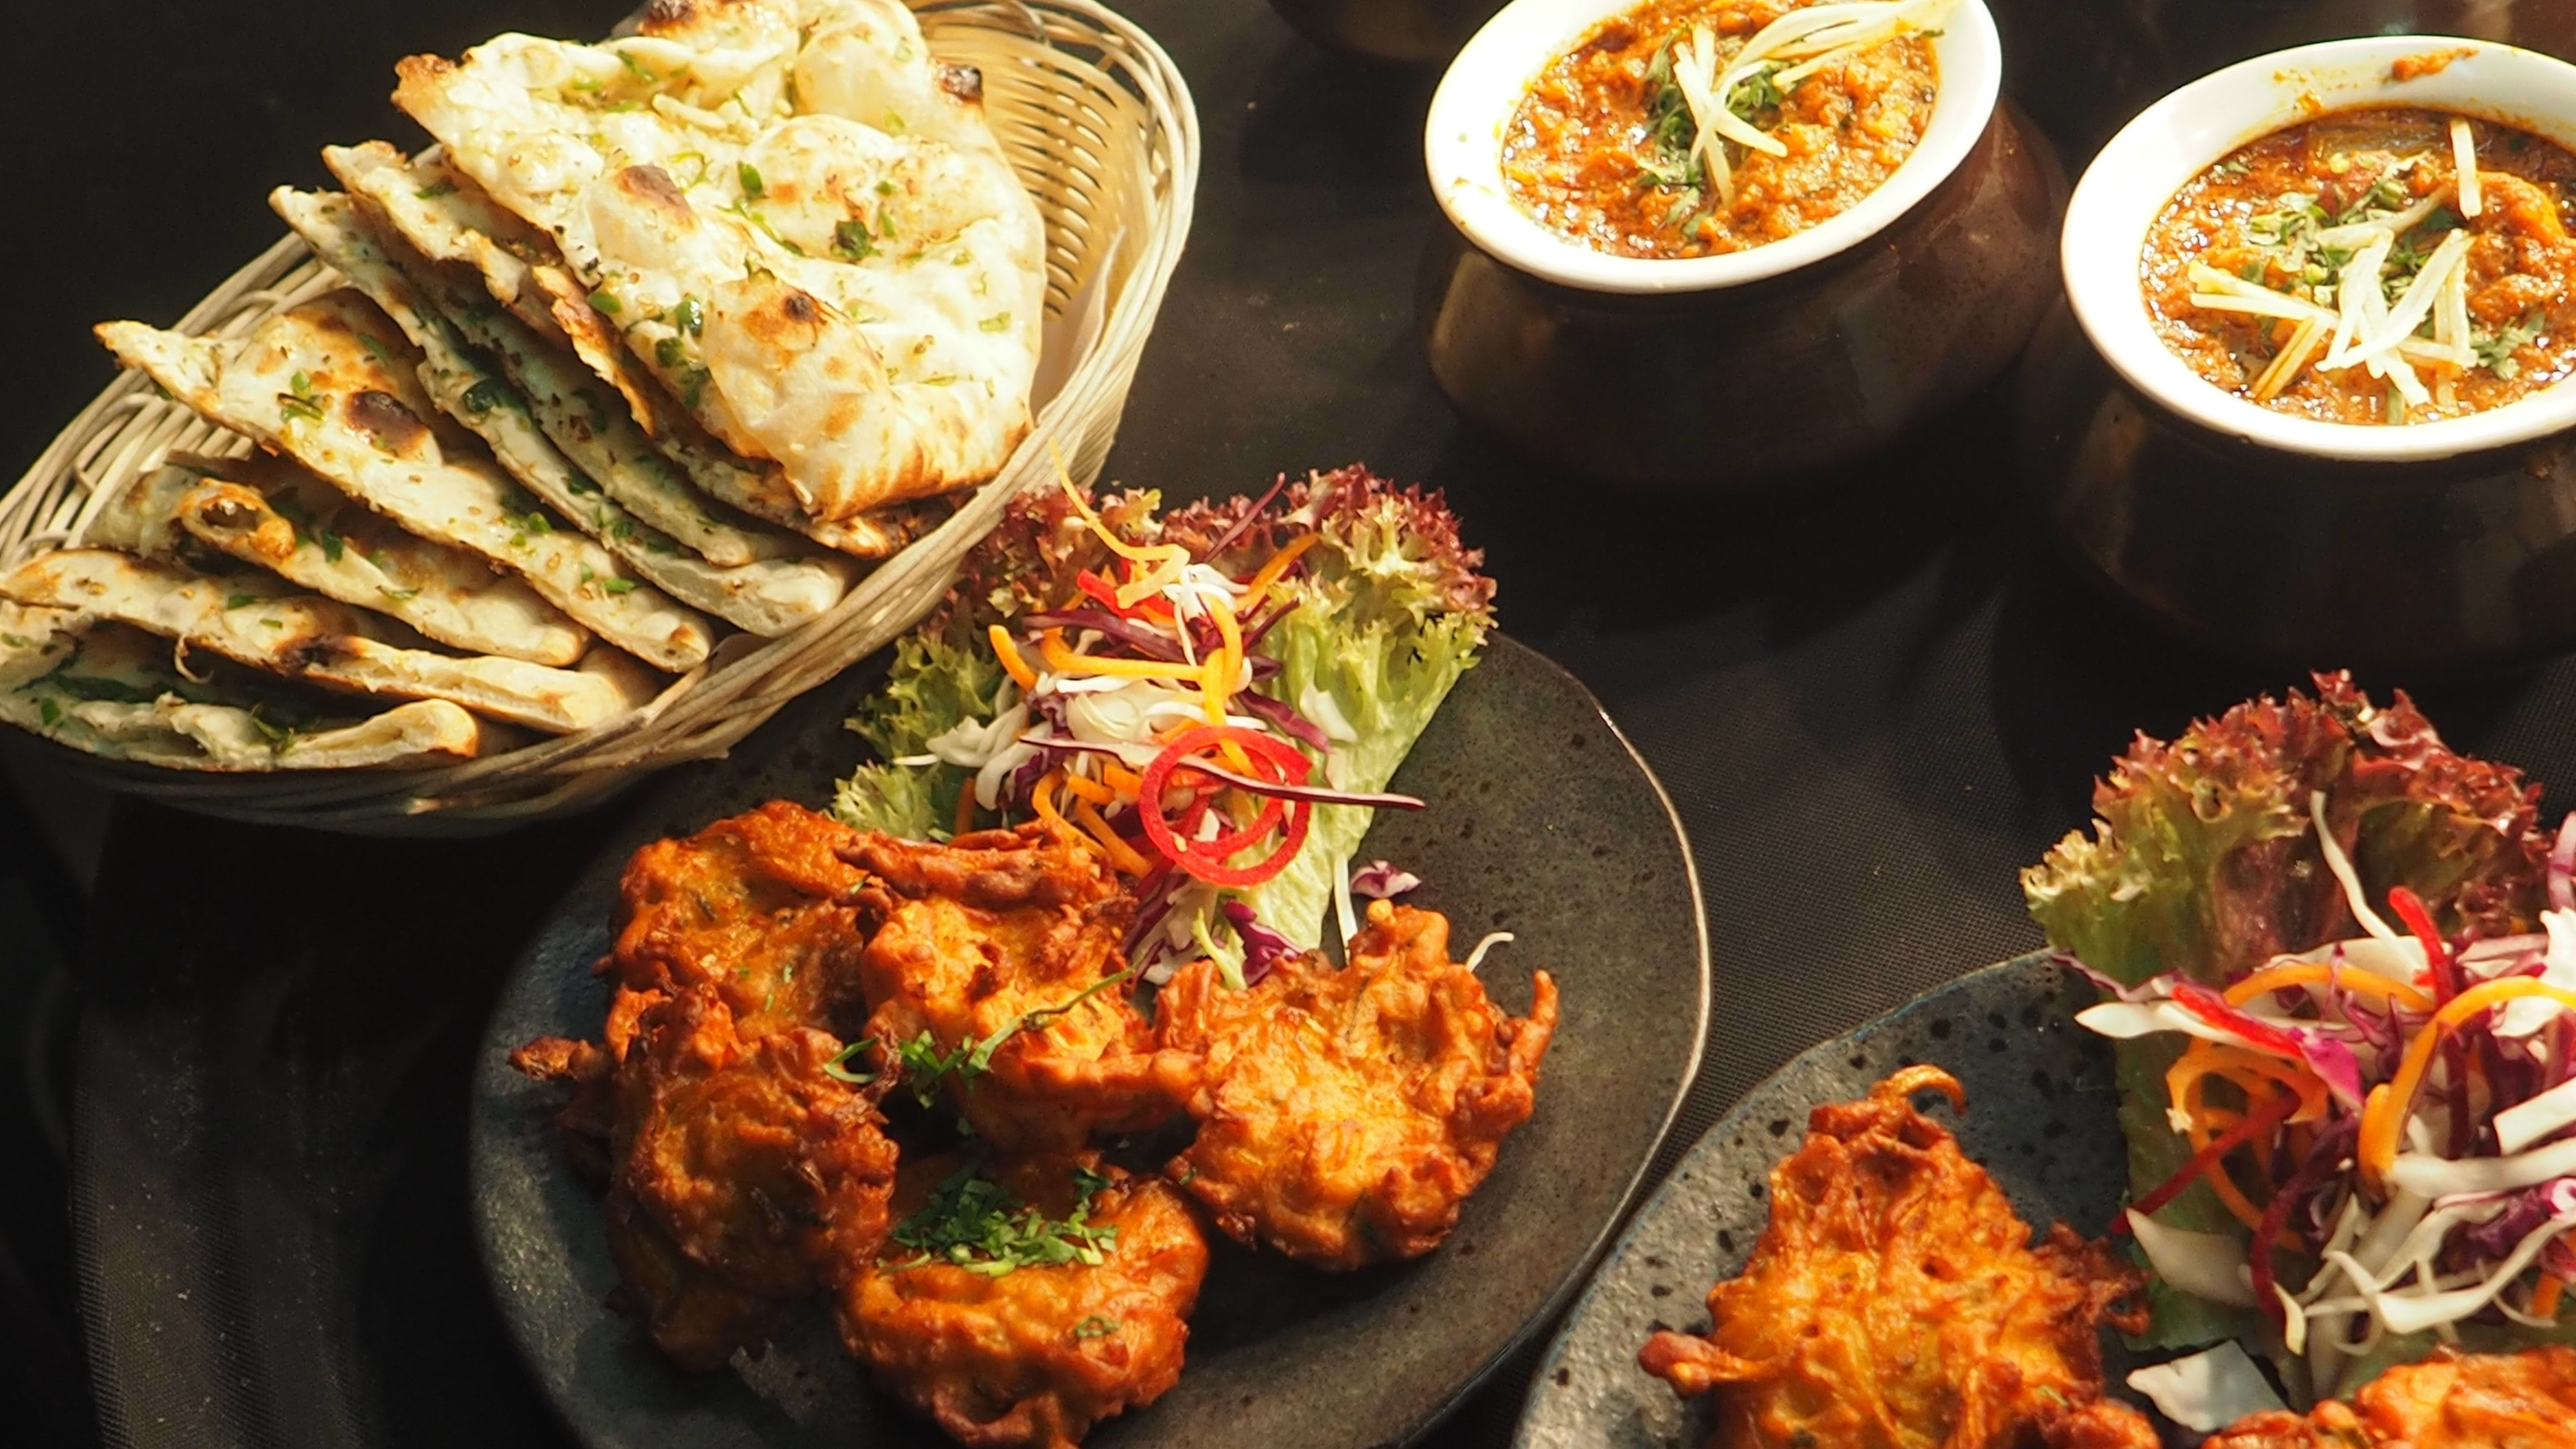 Assorted Fried Dish Indian Food Catering Indian Food Recipes Food